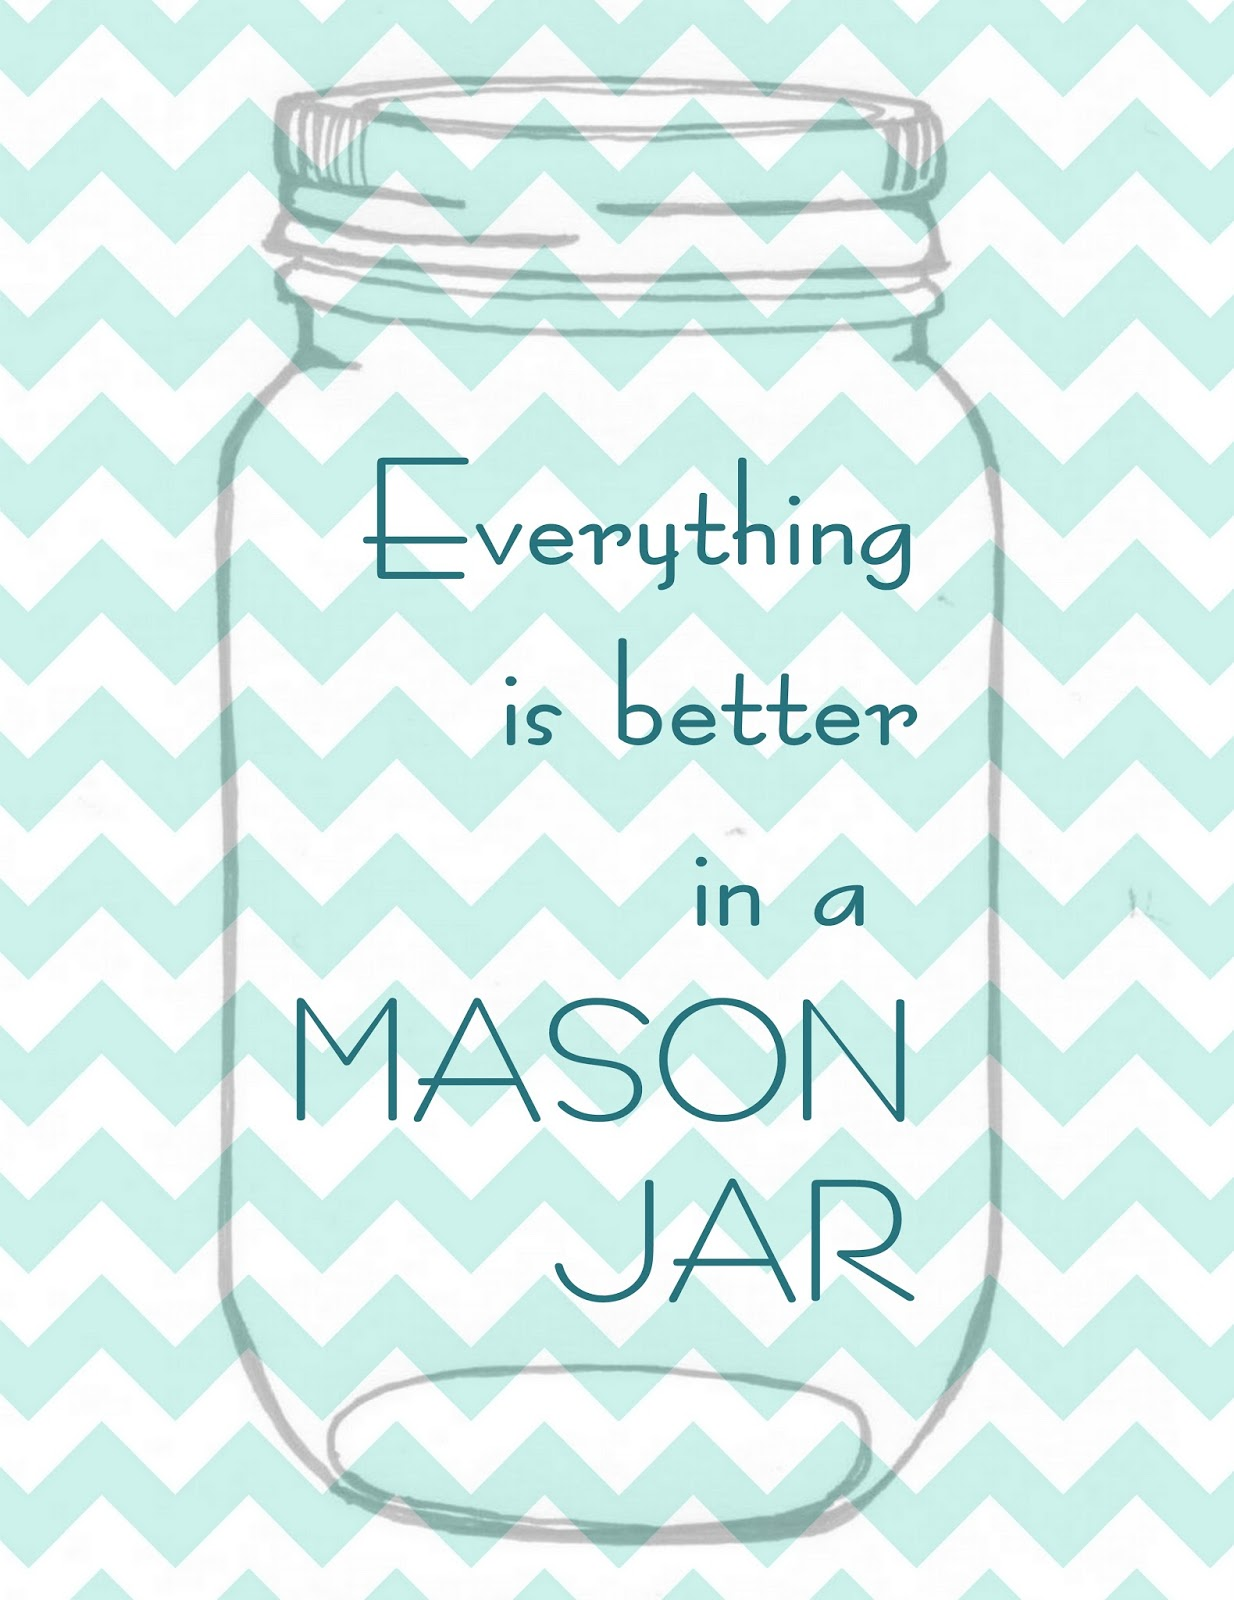 picture about Free Printable Mason Jar Template identified as Anything at all is Much better inside of a Mason Jar Cost-free Printable Artwork - The